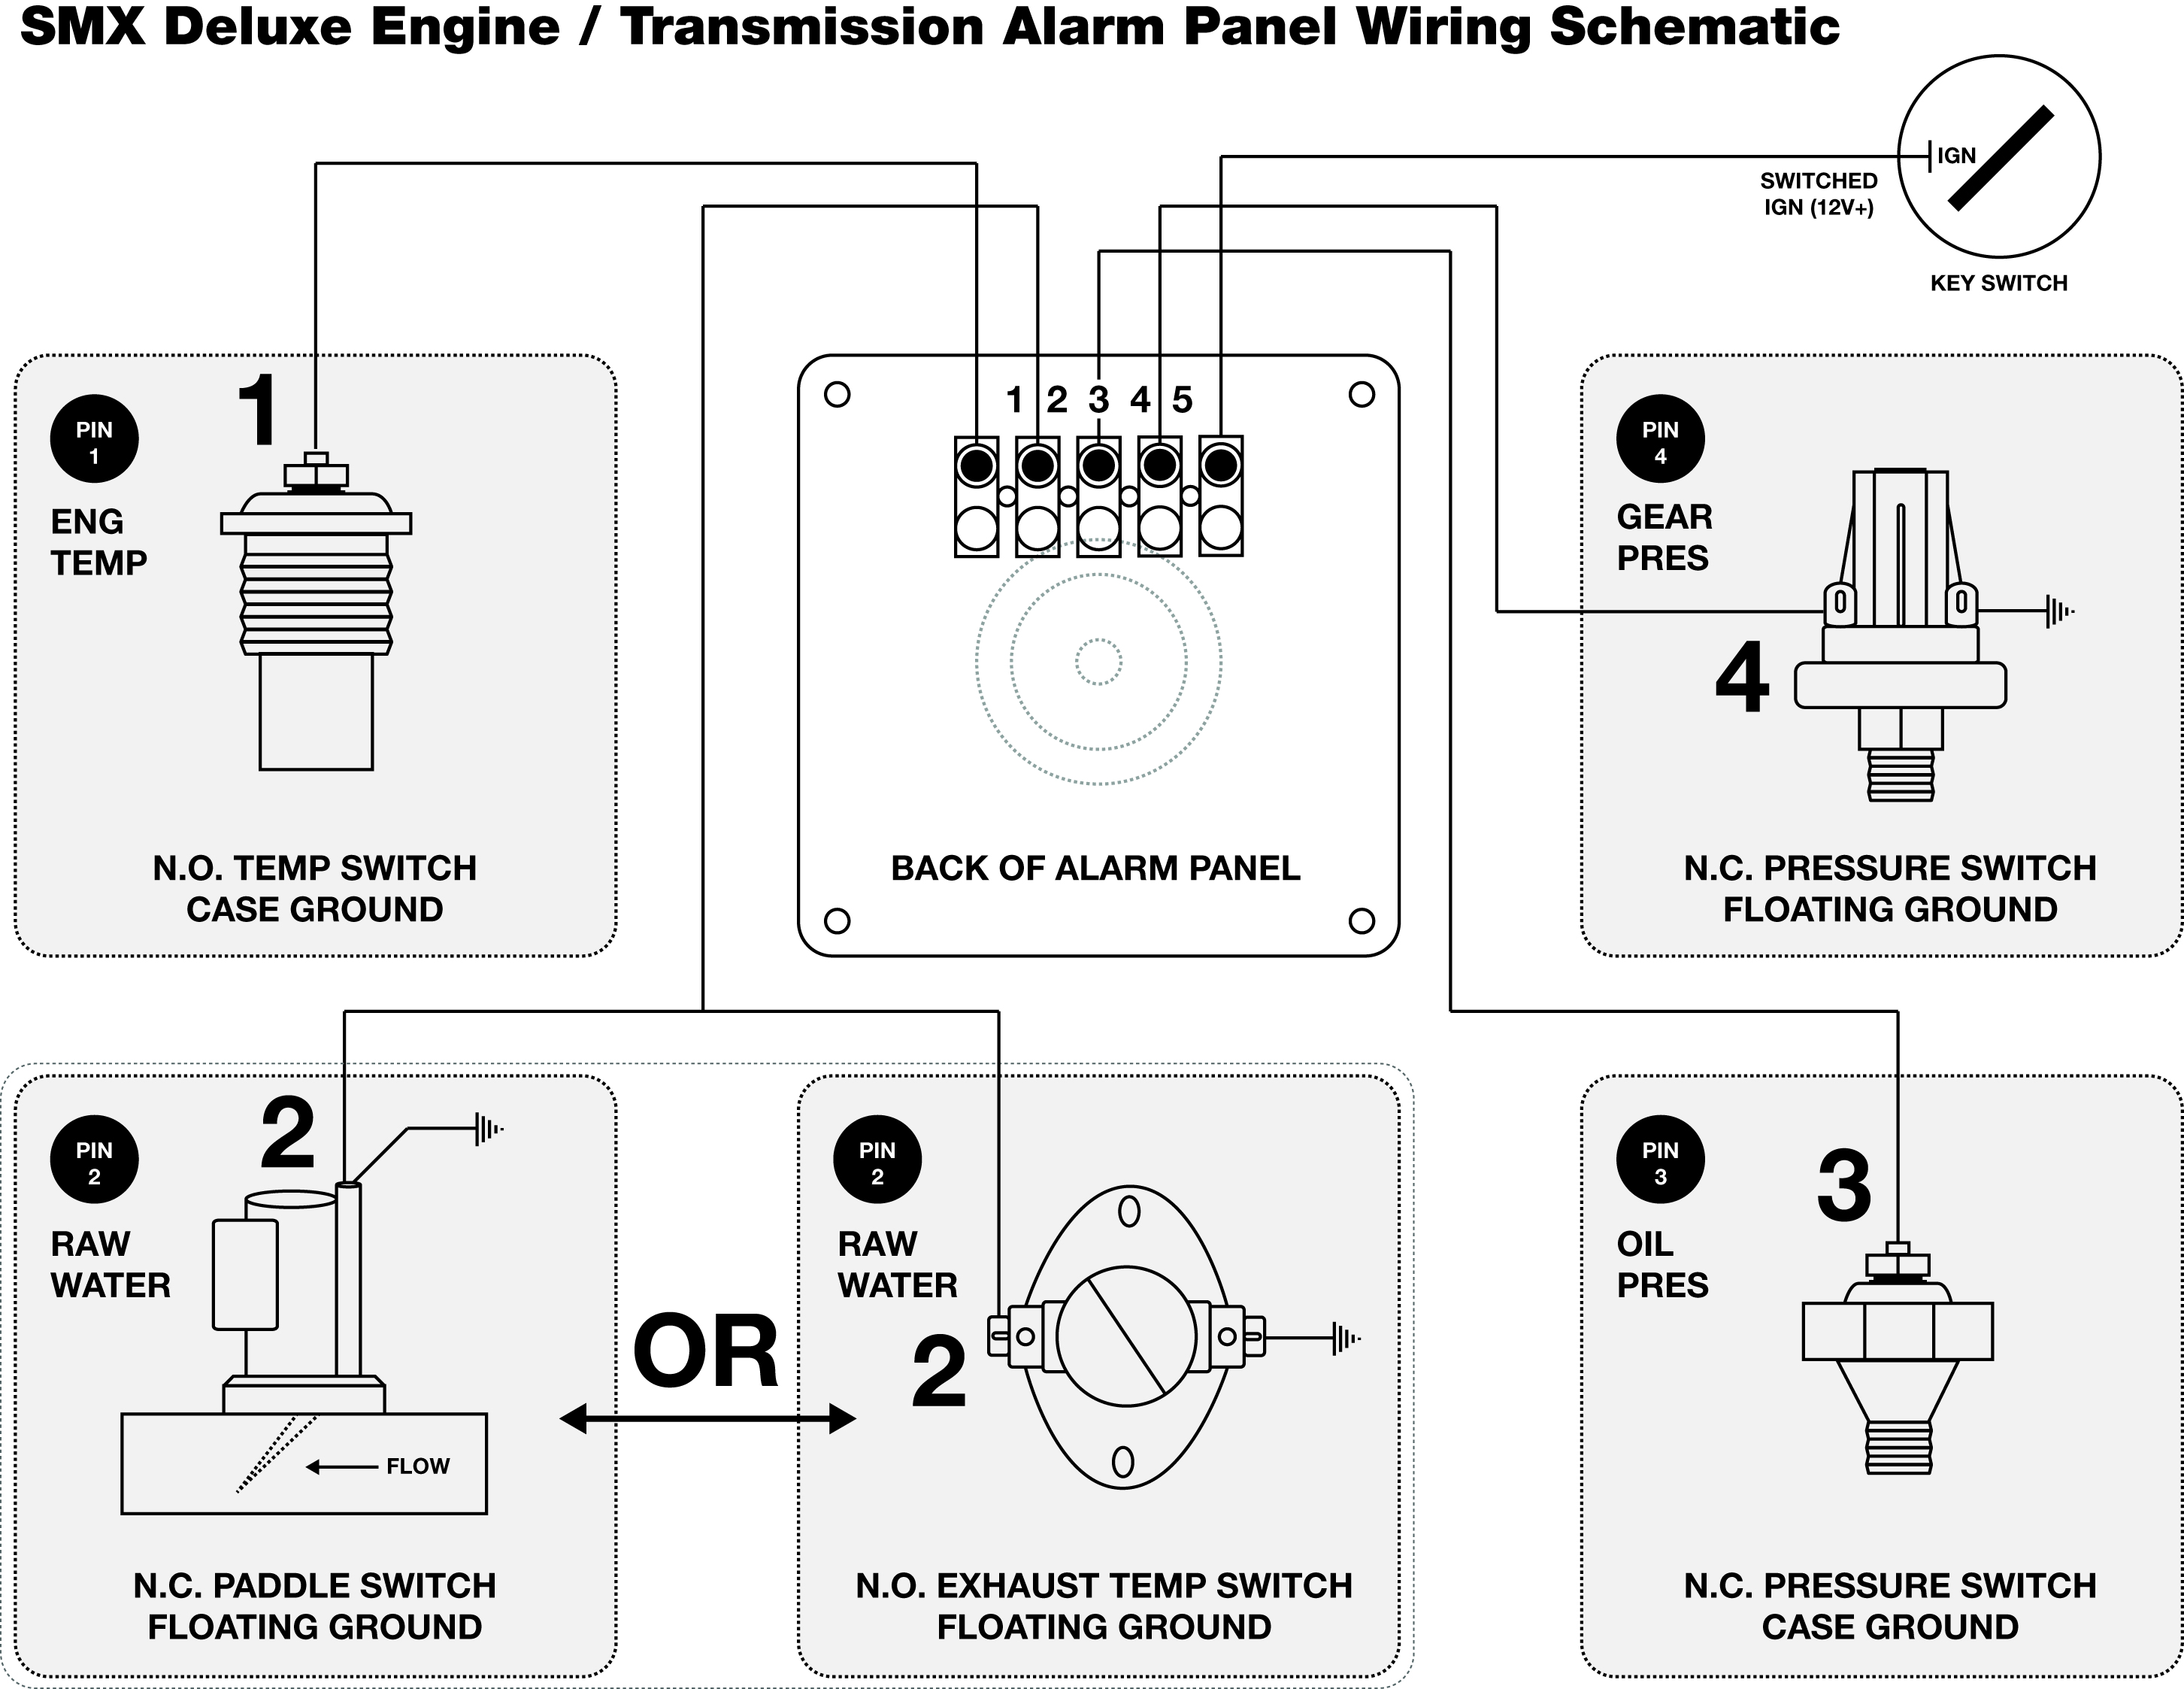 Smx Deluxe Engine Transmission Alarm Panel